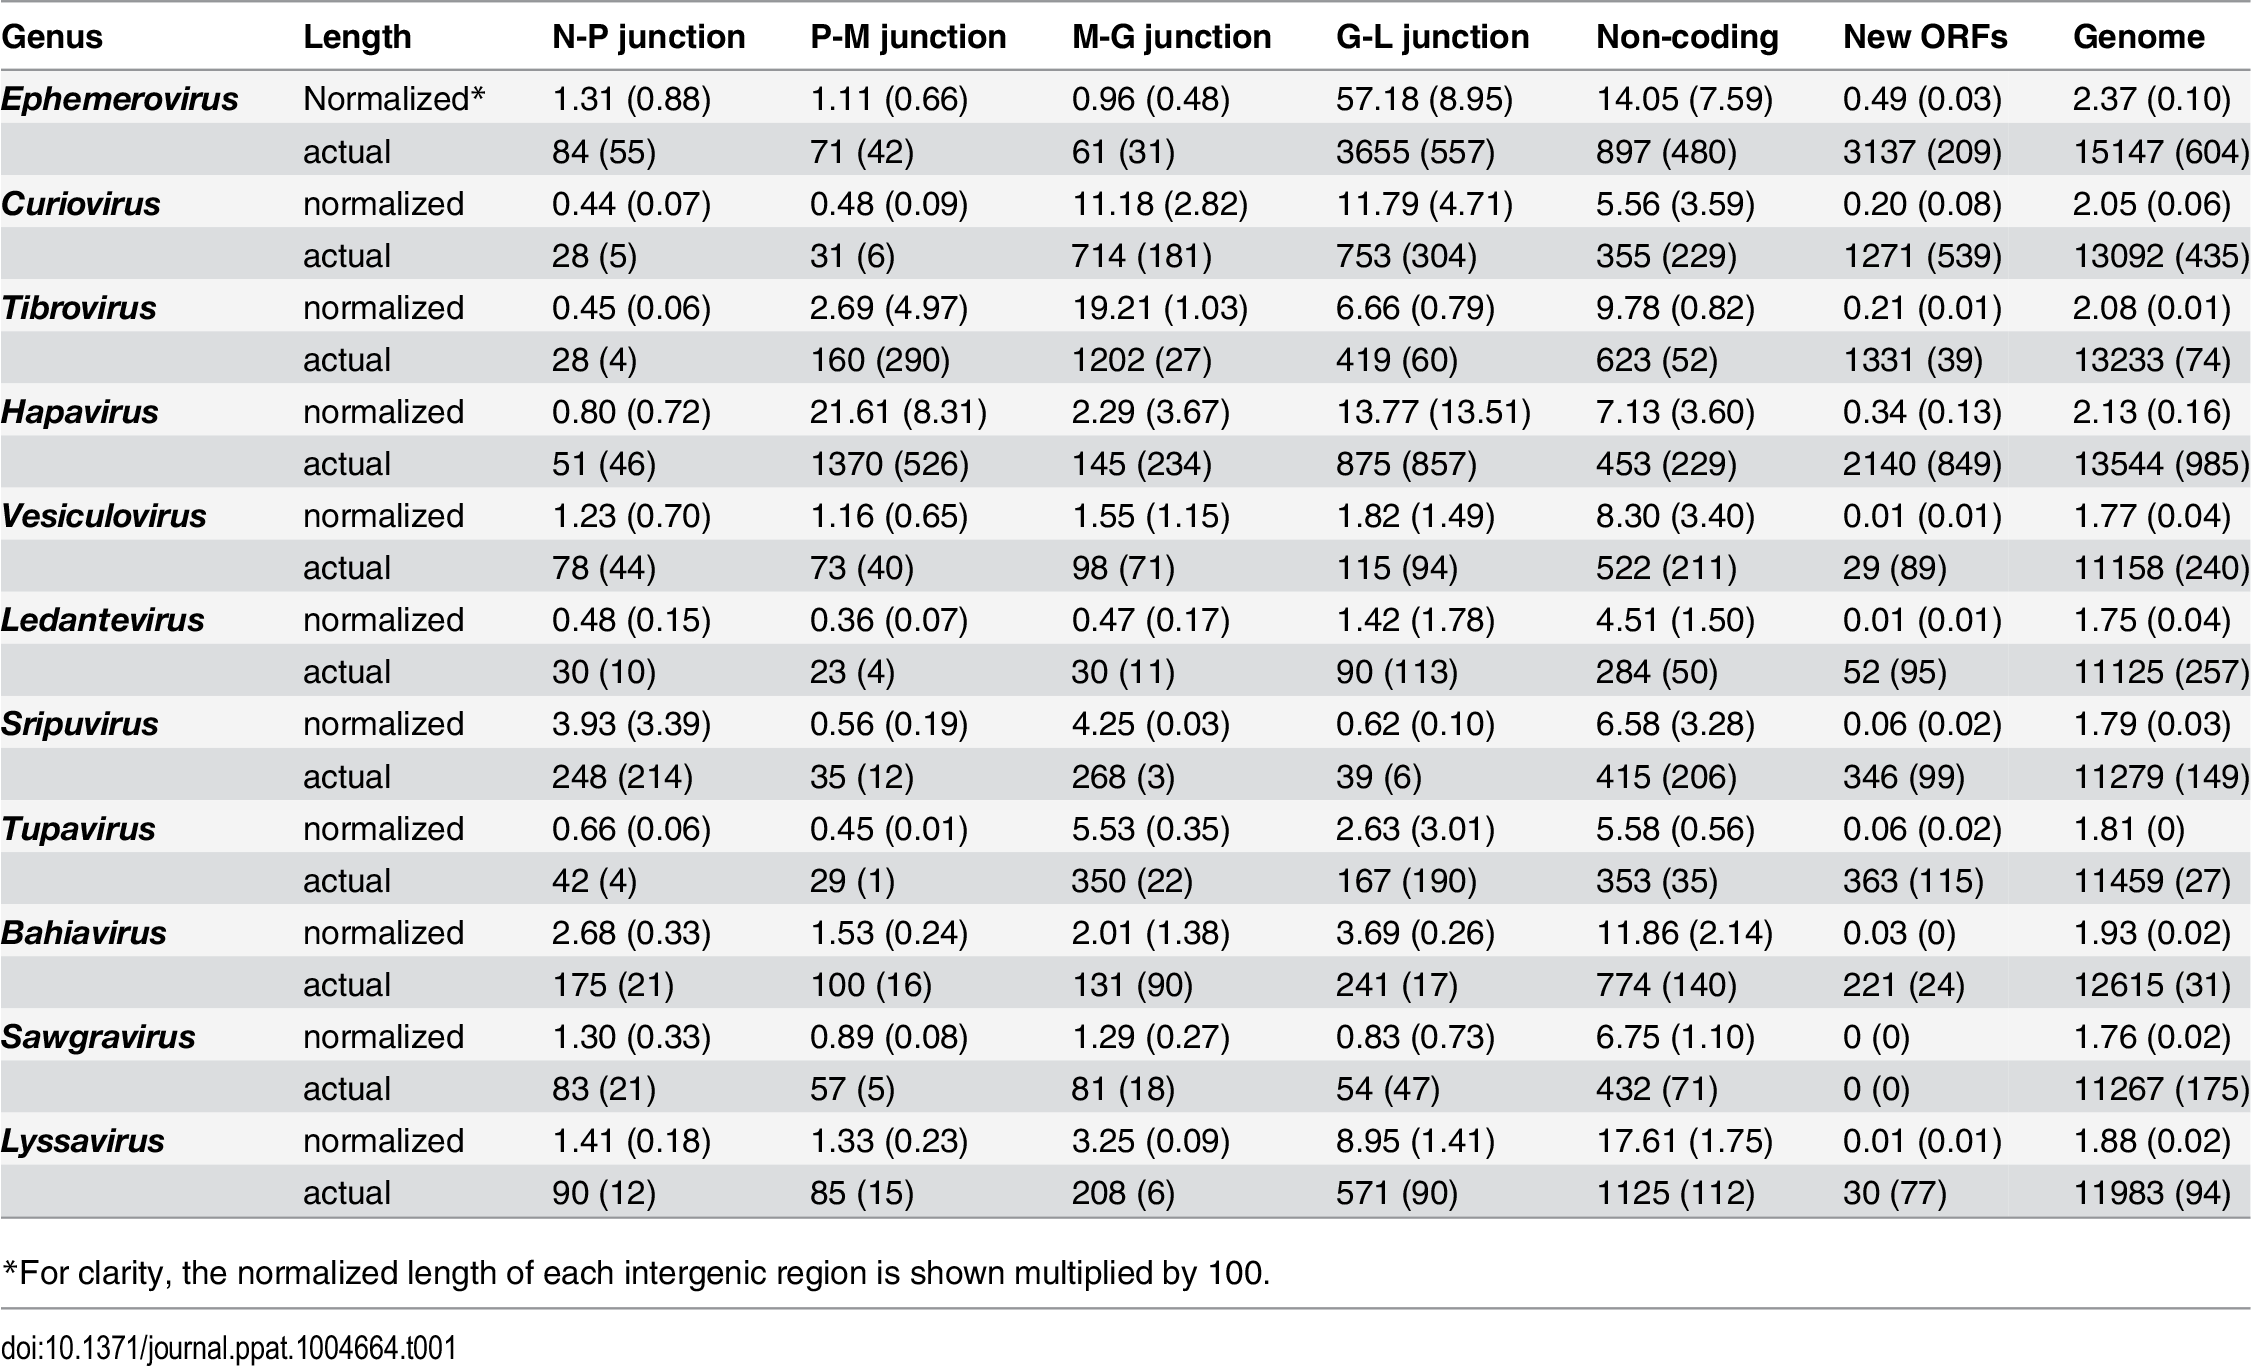 Averages (standard deviation) of the actual lengths of each genome region (nt), and the normalized lengths relative to the length of the L gene.